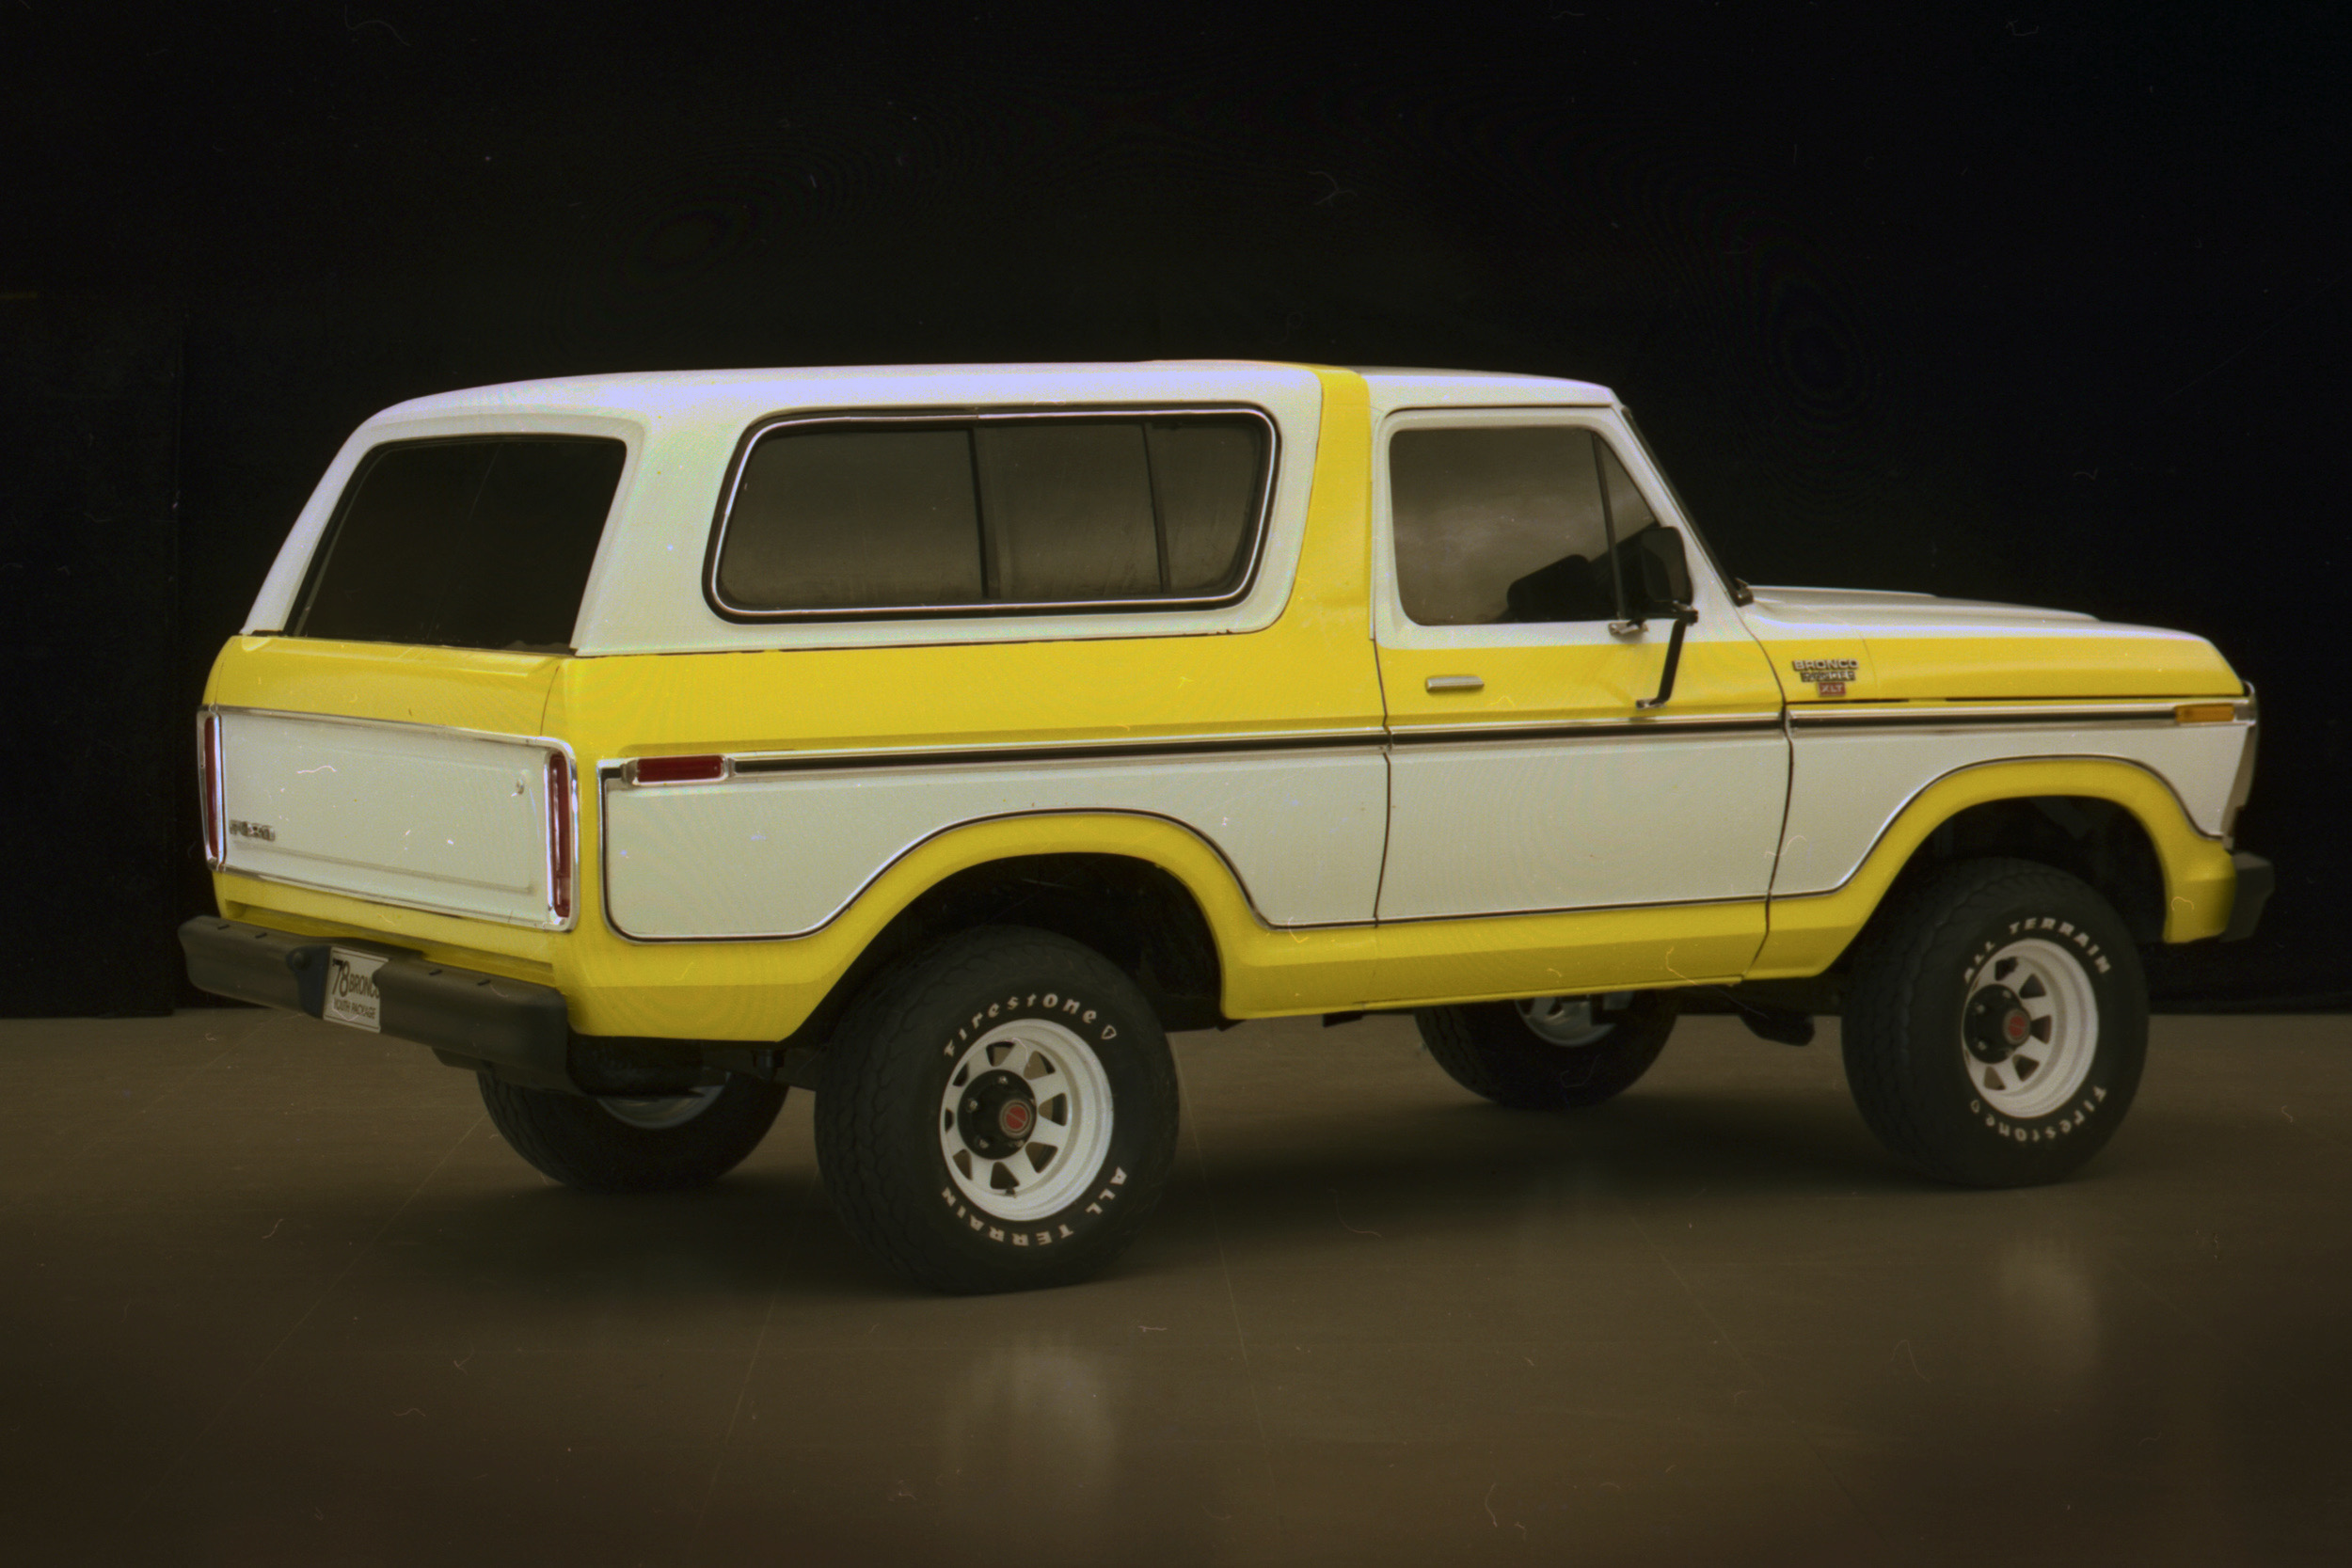 1978 Ford Bronco Best Affordable Classic 4x4s Worth Buying Today